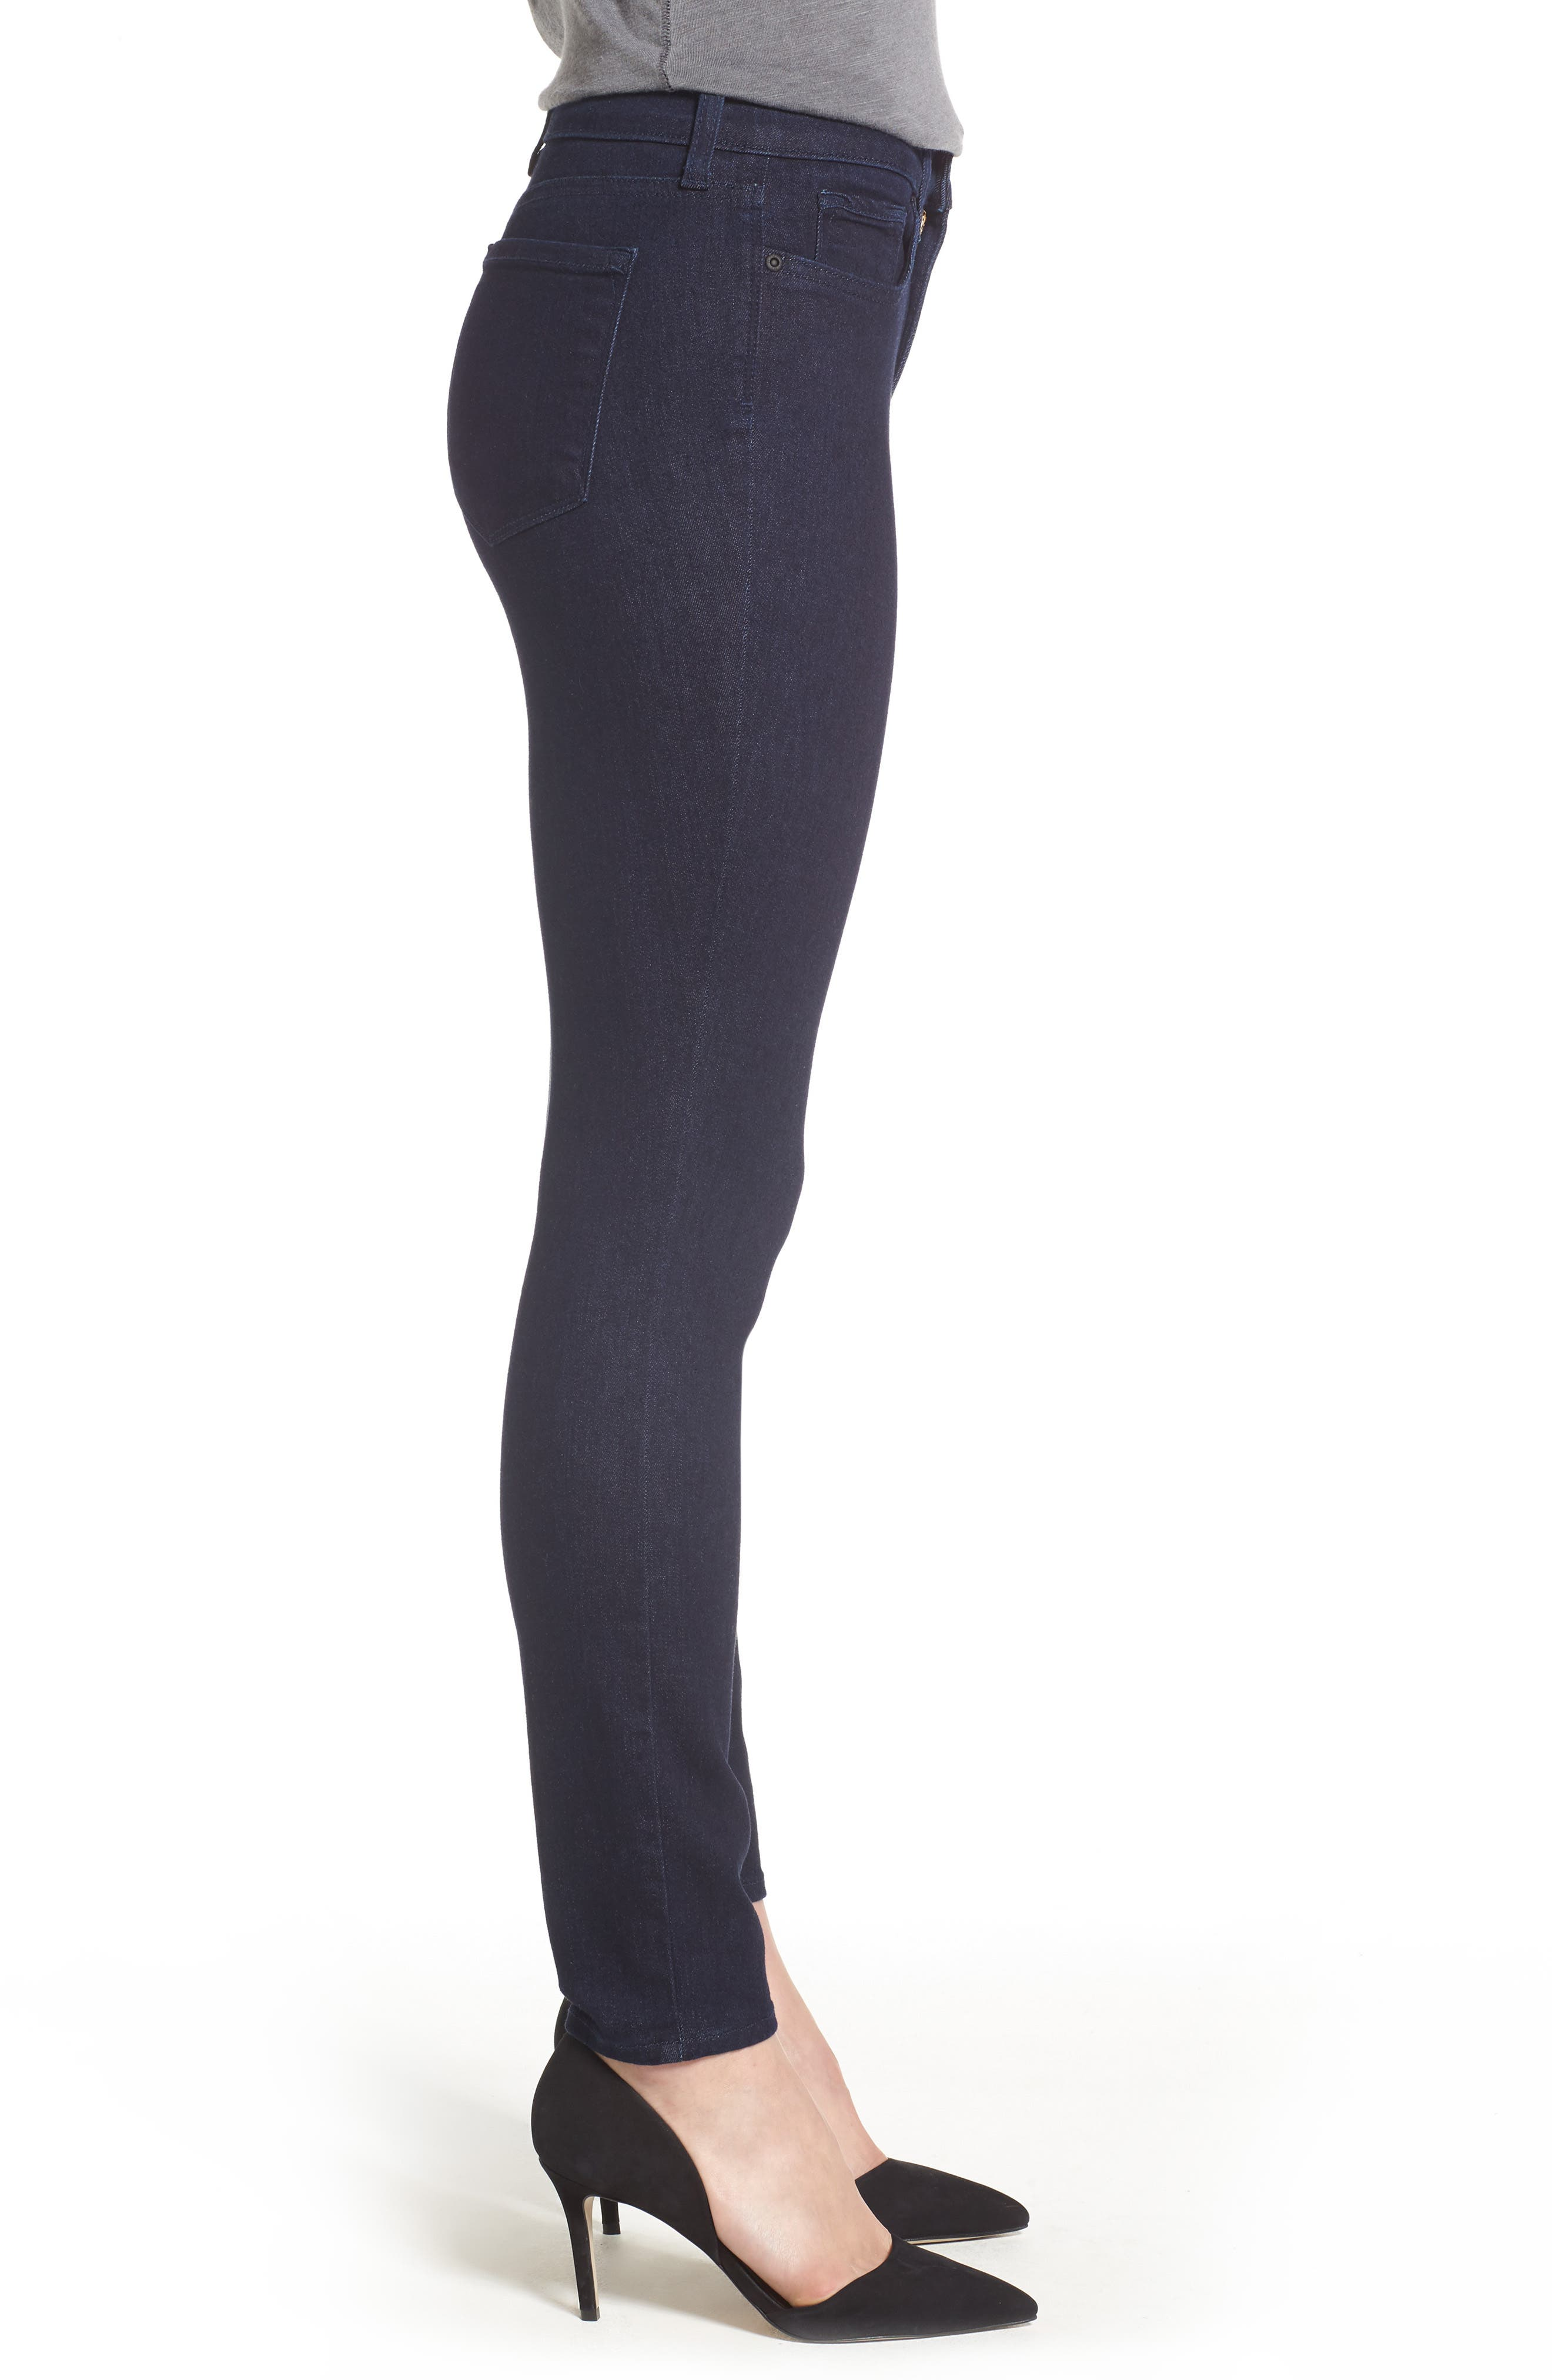 Alternate Image 3  - NYDJ Ami Stretch Skinny Jeans (Rinse) (Regular & Petite)